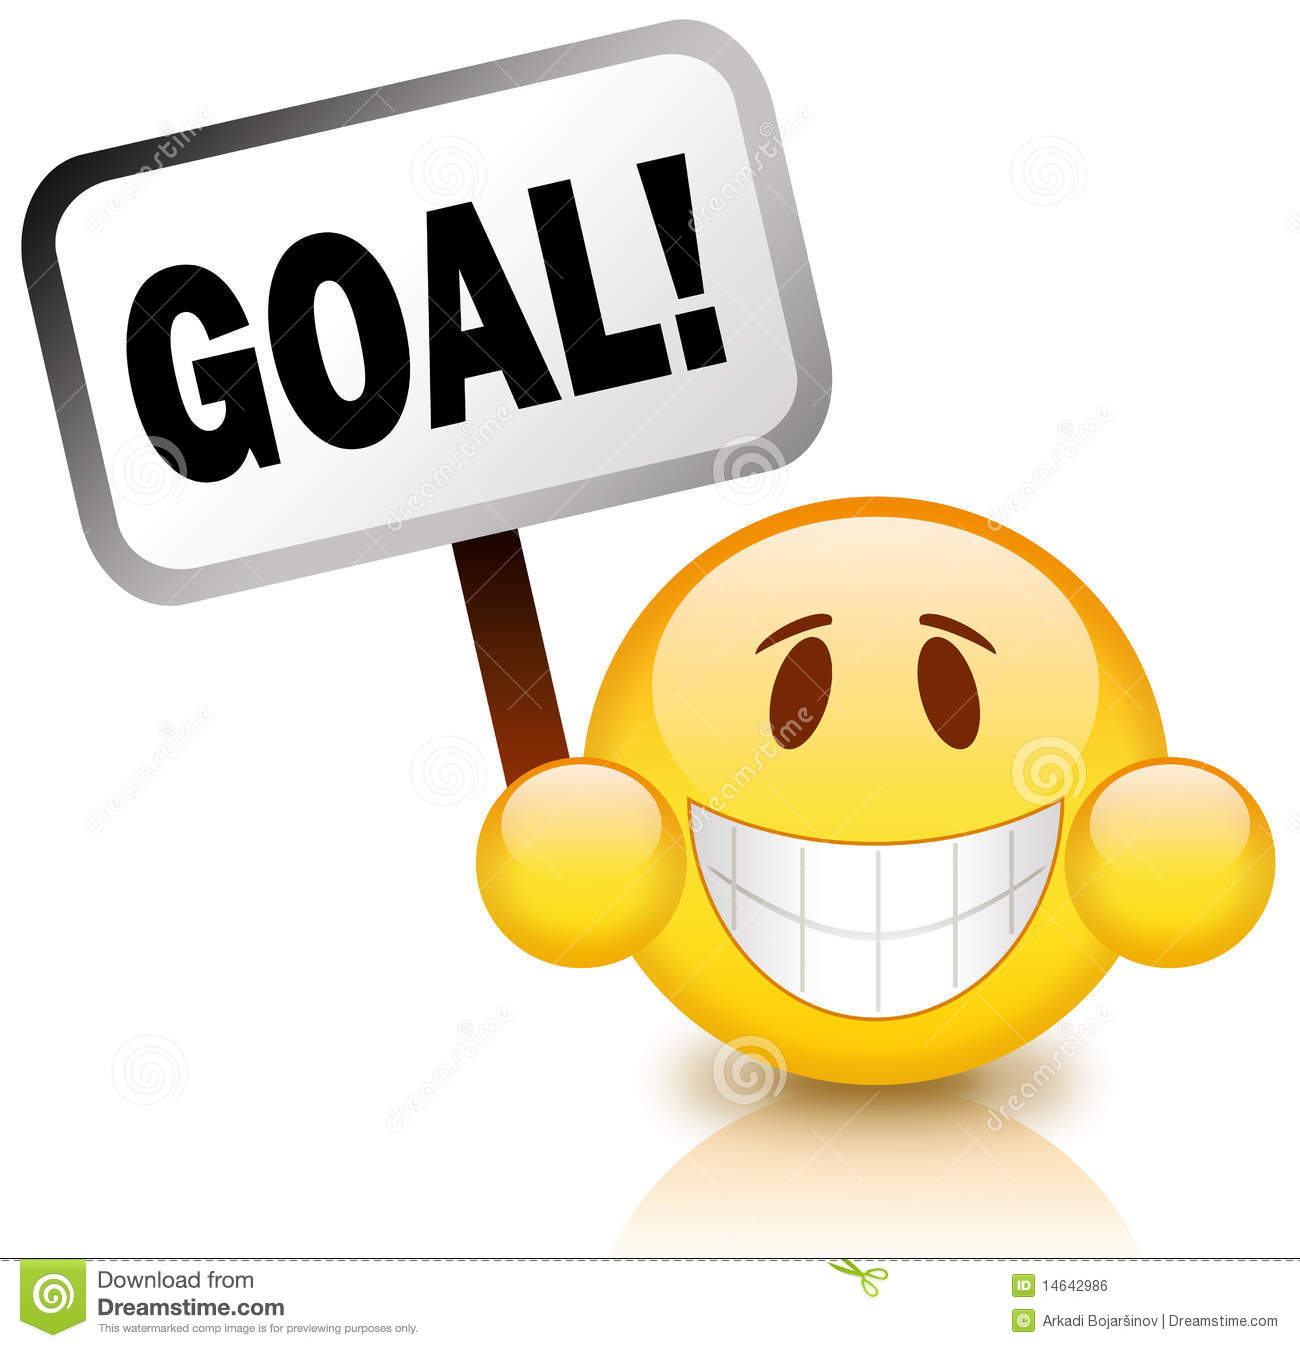 Goal Icon Royalty Free Stock Image - Image: 14642986